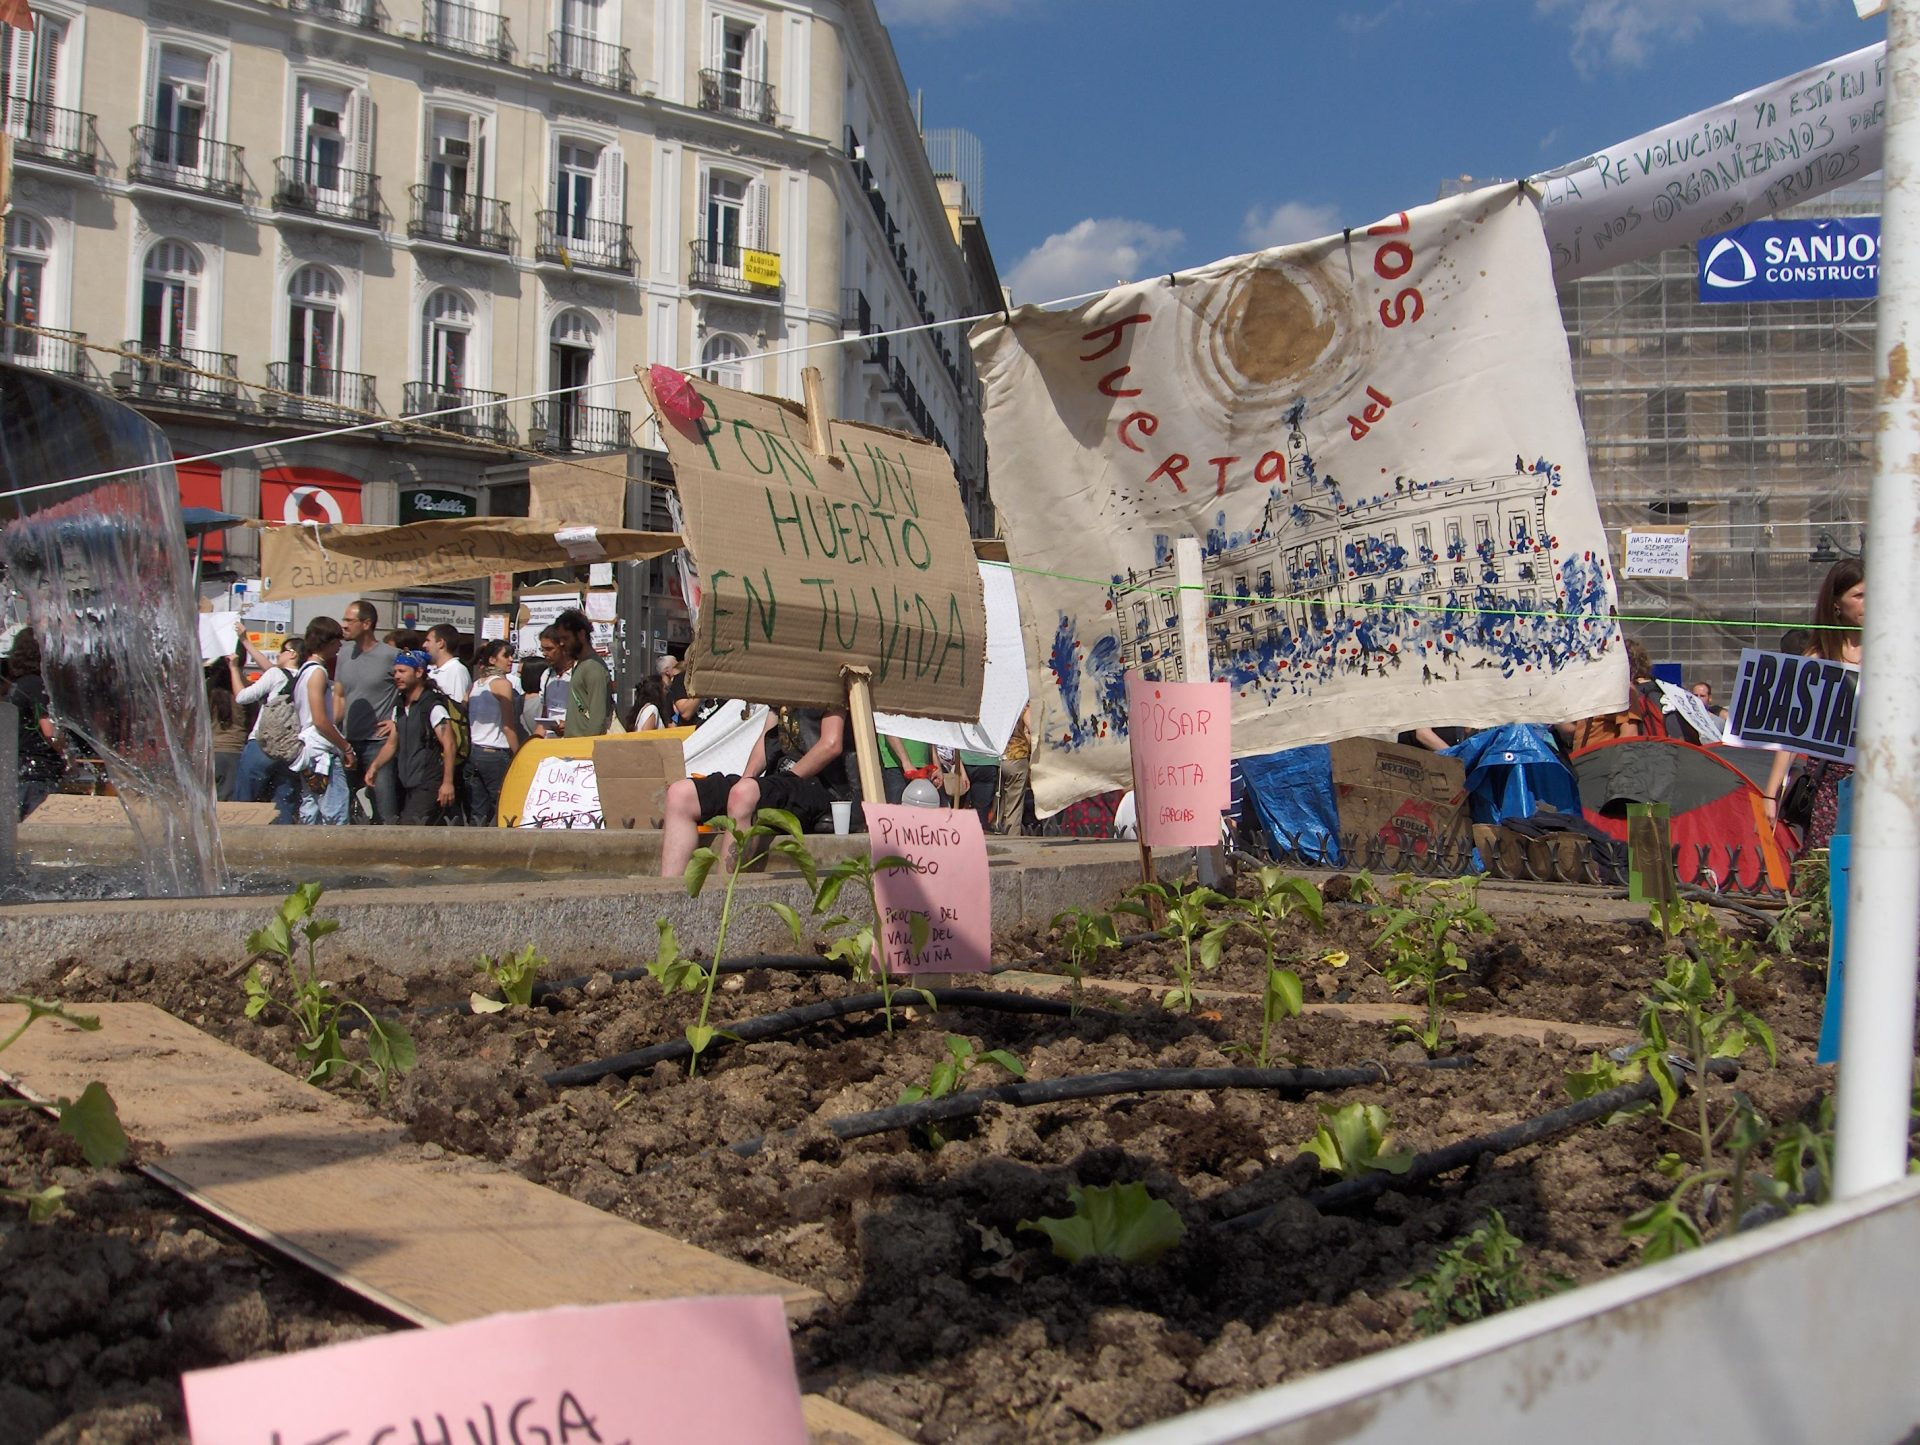 Community garden in Puerta del Sol occupation during M15 demonstrations in Madrid. Credit: Jose Luis Fernández Casadevante, Kois.